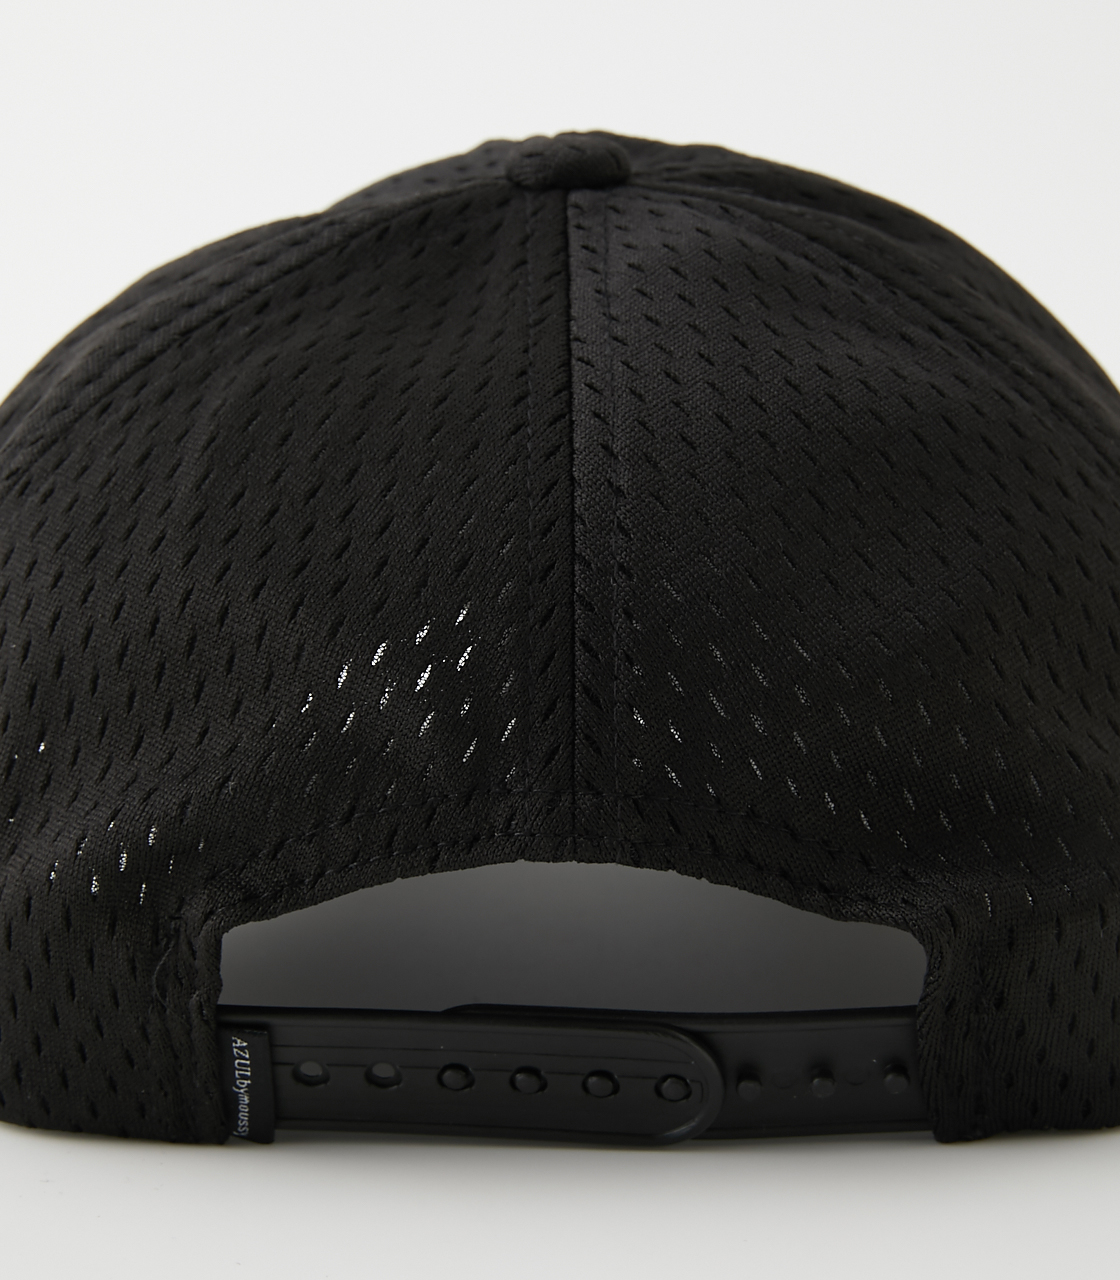 A LOGO ALL MESH CAP/アロゴオールメッシュキャップ 詳細画像 BLK 6